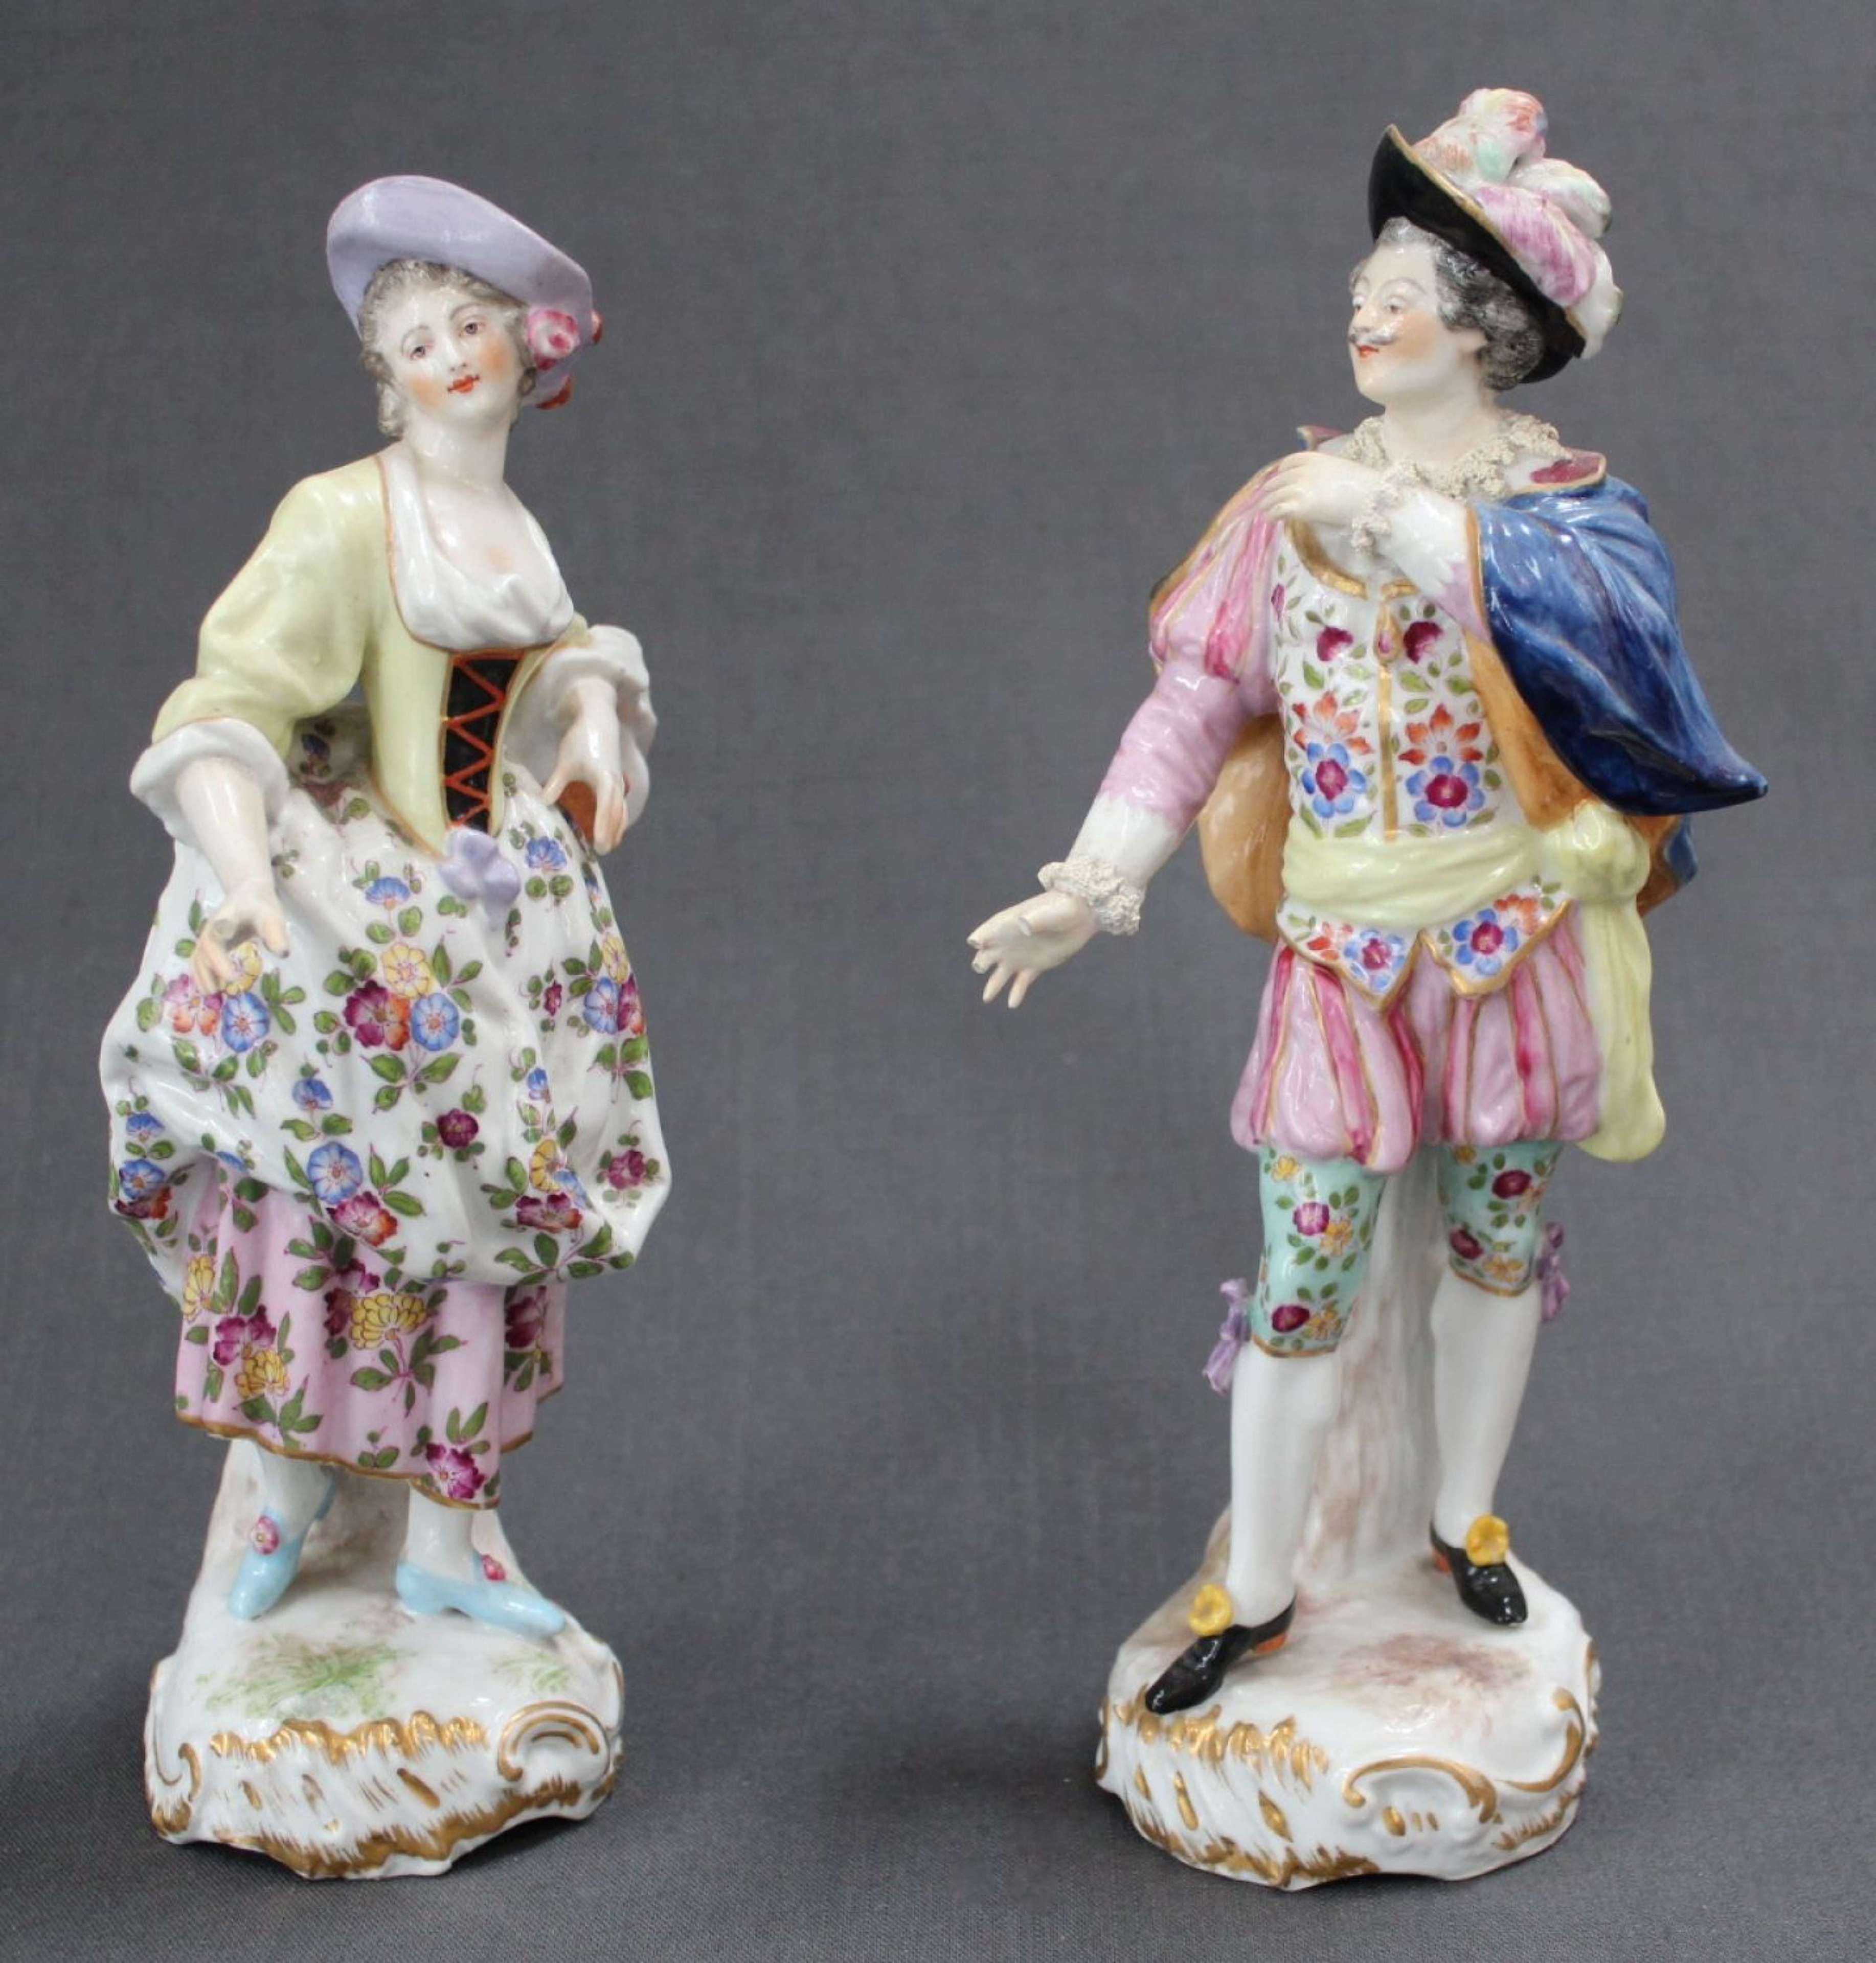 A pair of 19th Century German figures